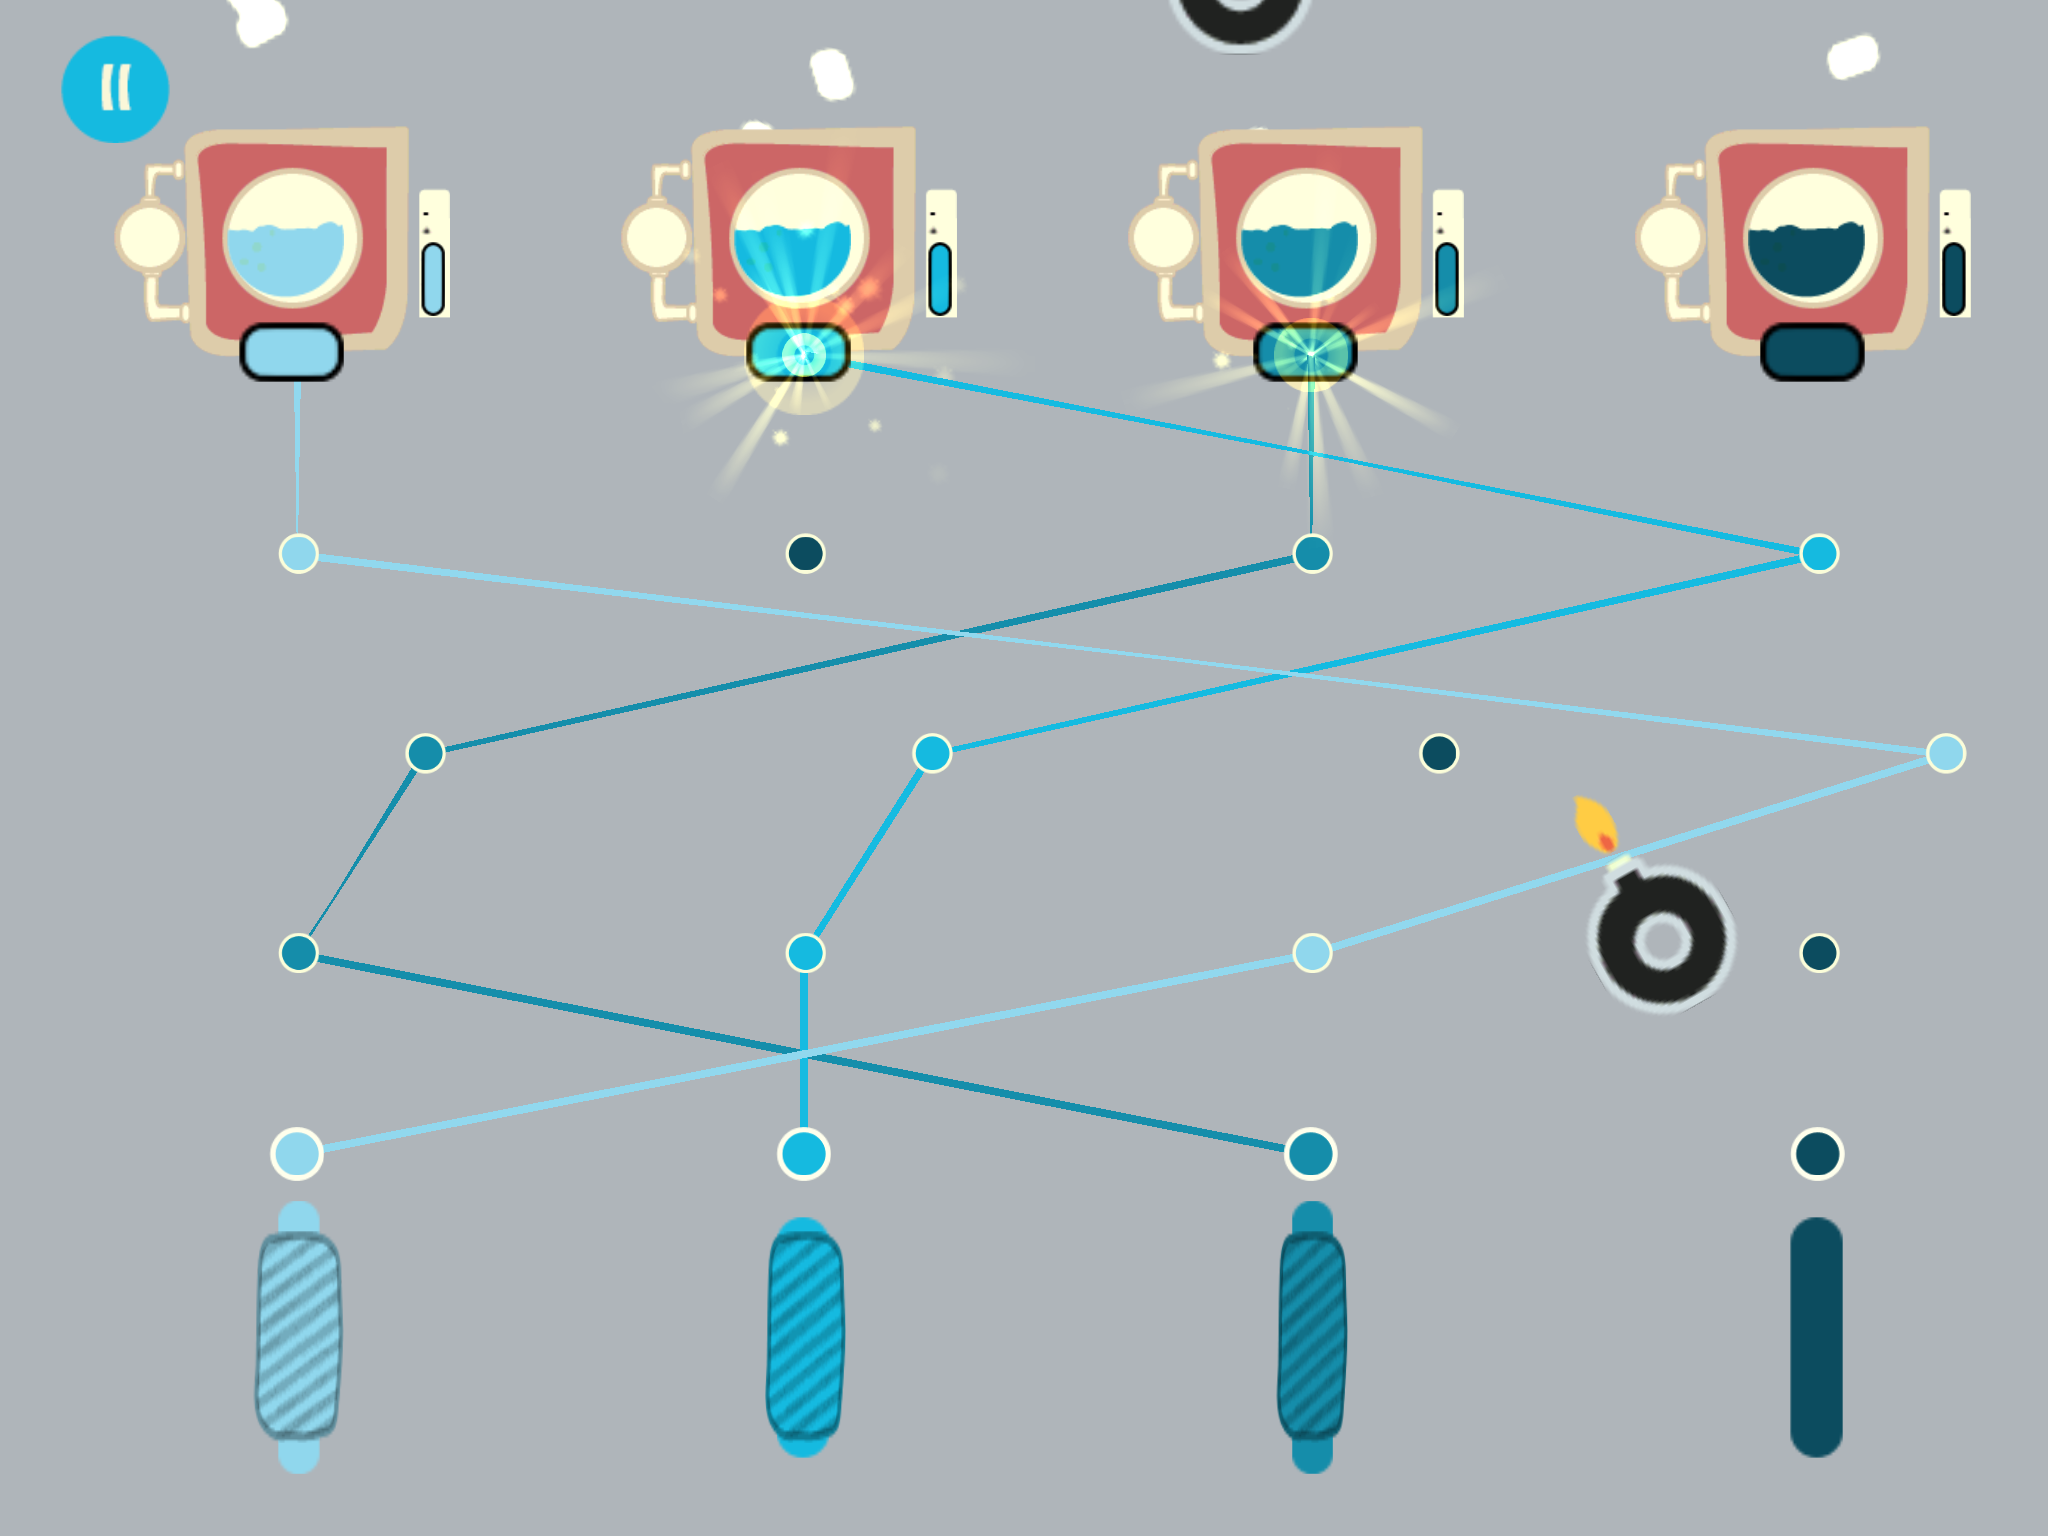 Step 5 Nylla Game: connect the dots with the same color to make bobbins of yarn.    Available on Apple Store. www.econyl.com #graphic #design #educational #game #videogame #nylla #turtle #recycling